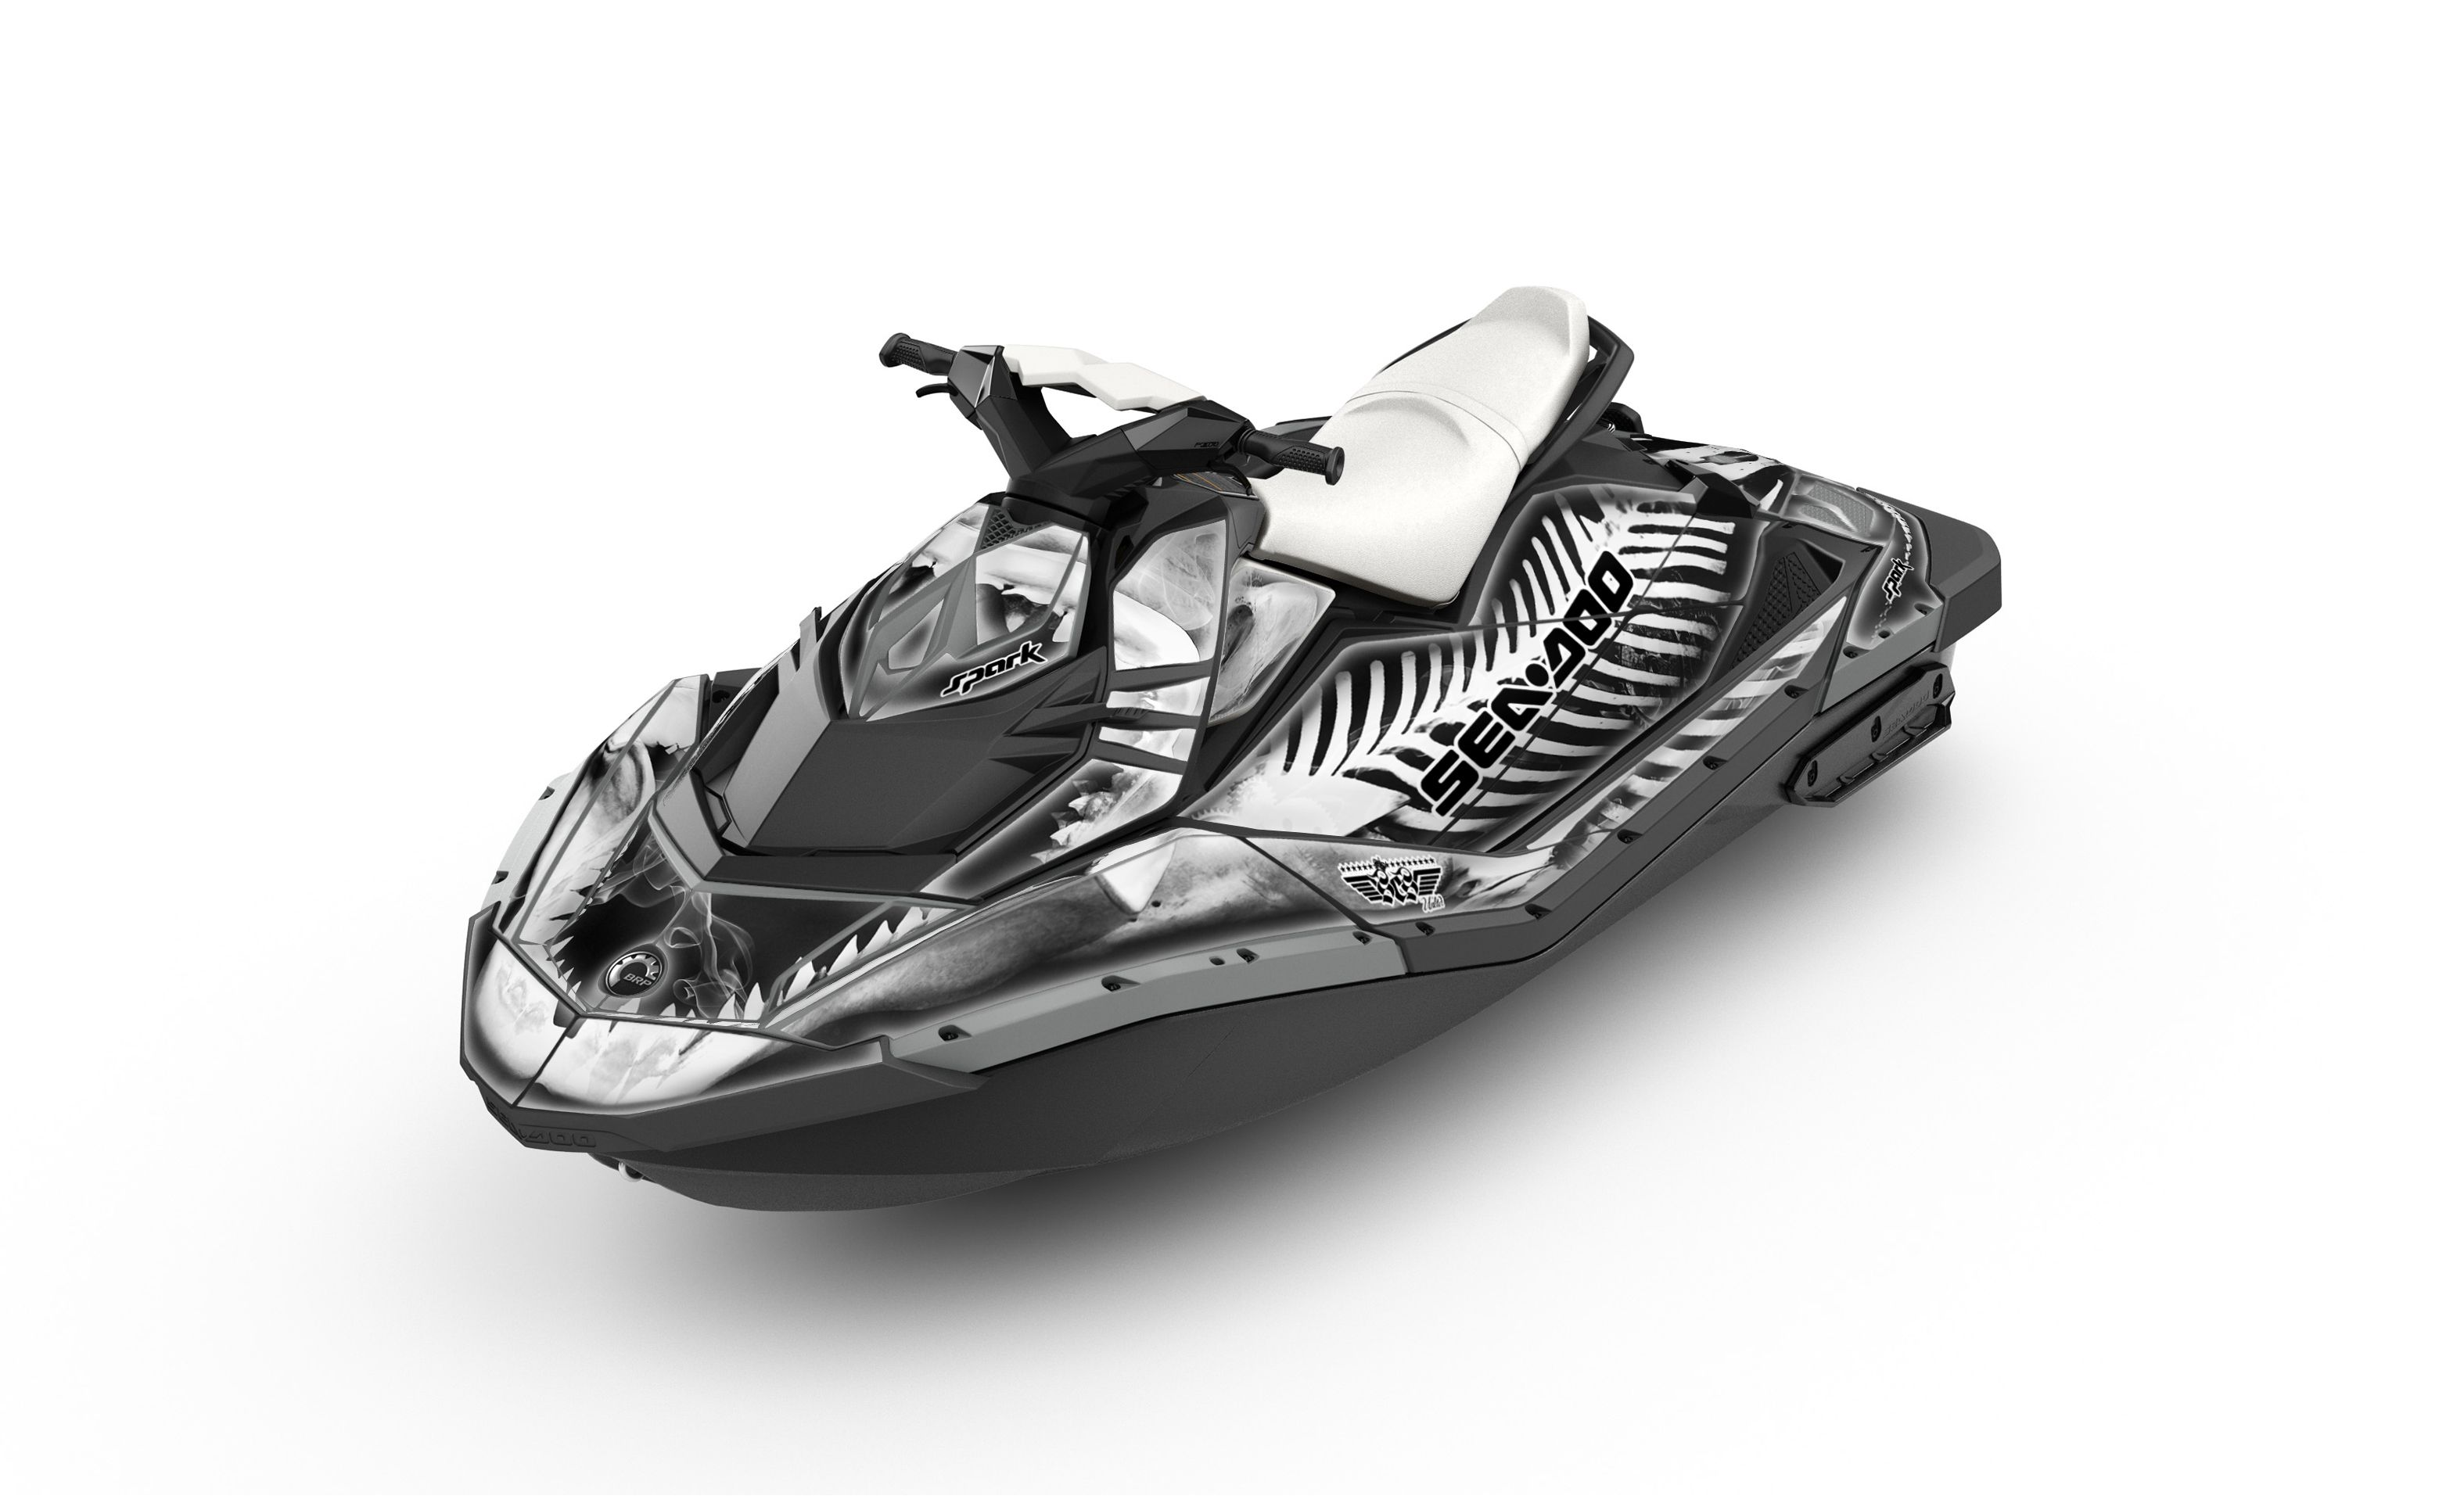 2014 Sea-Doo Spark with X-ray Gray wrap. www.sea-